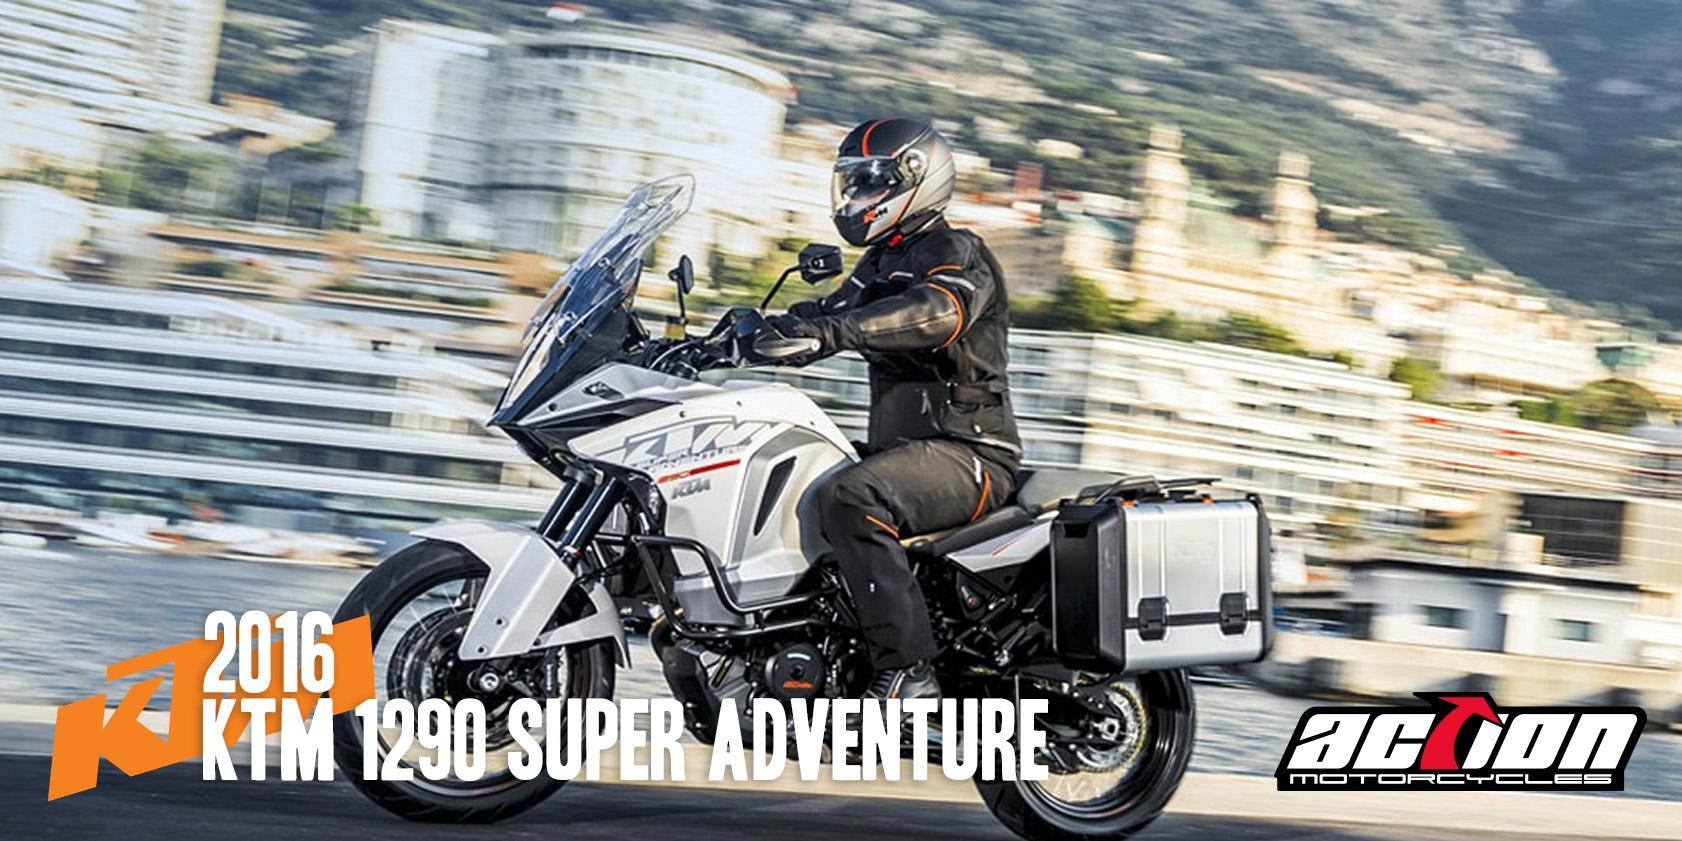 Action Motorcycles Victoria BC, Honda Suzuki KTM Yamaha Victory Motorcycles    Why Not Buy From The Best?   Welcome